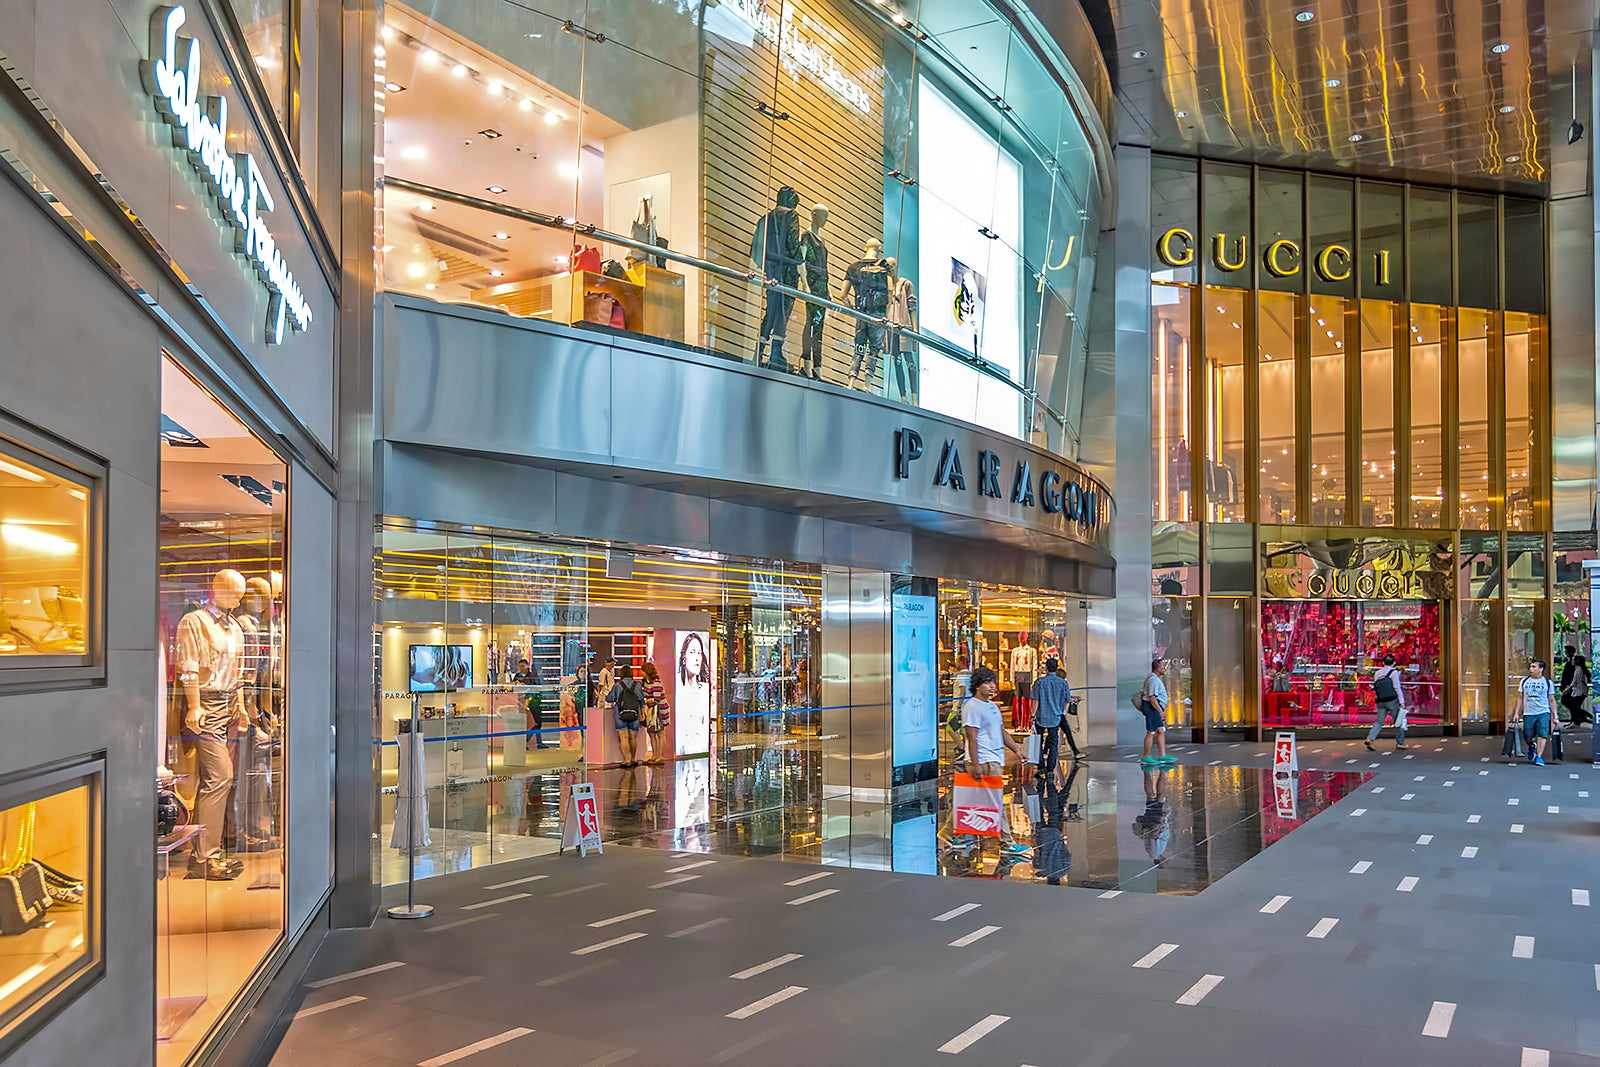 eb08837cb 16 Best Places to Go Shopping in Orchard Road - Where to Shop in Orchard  Road